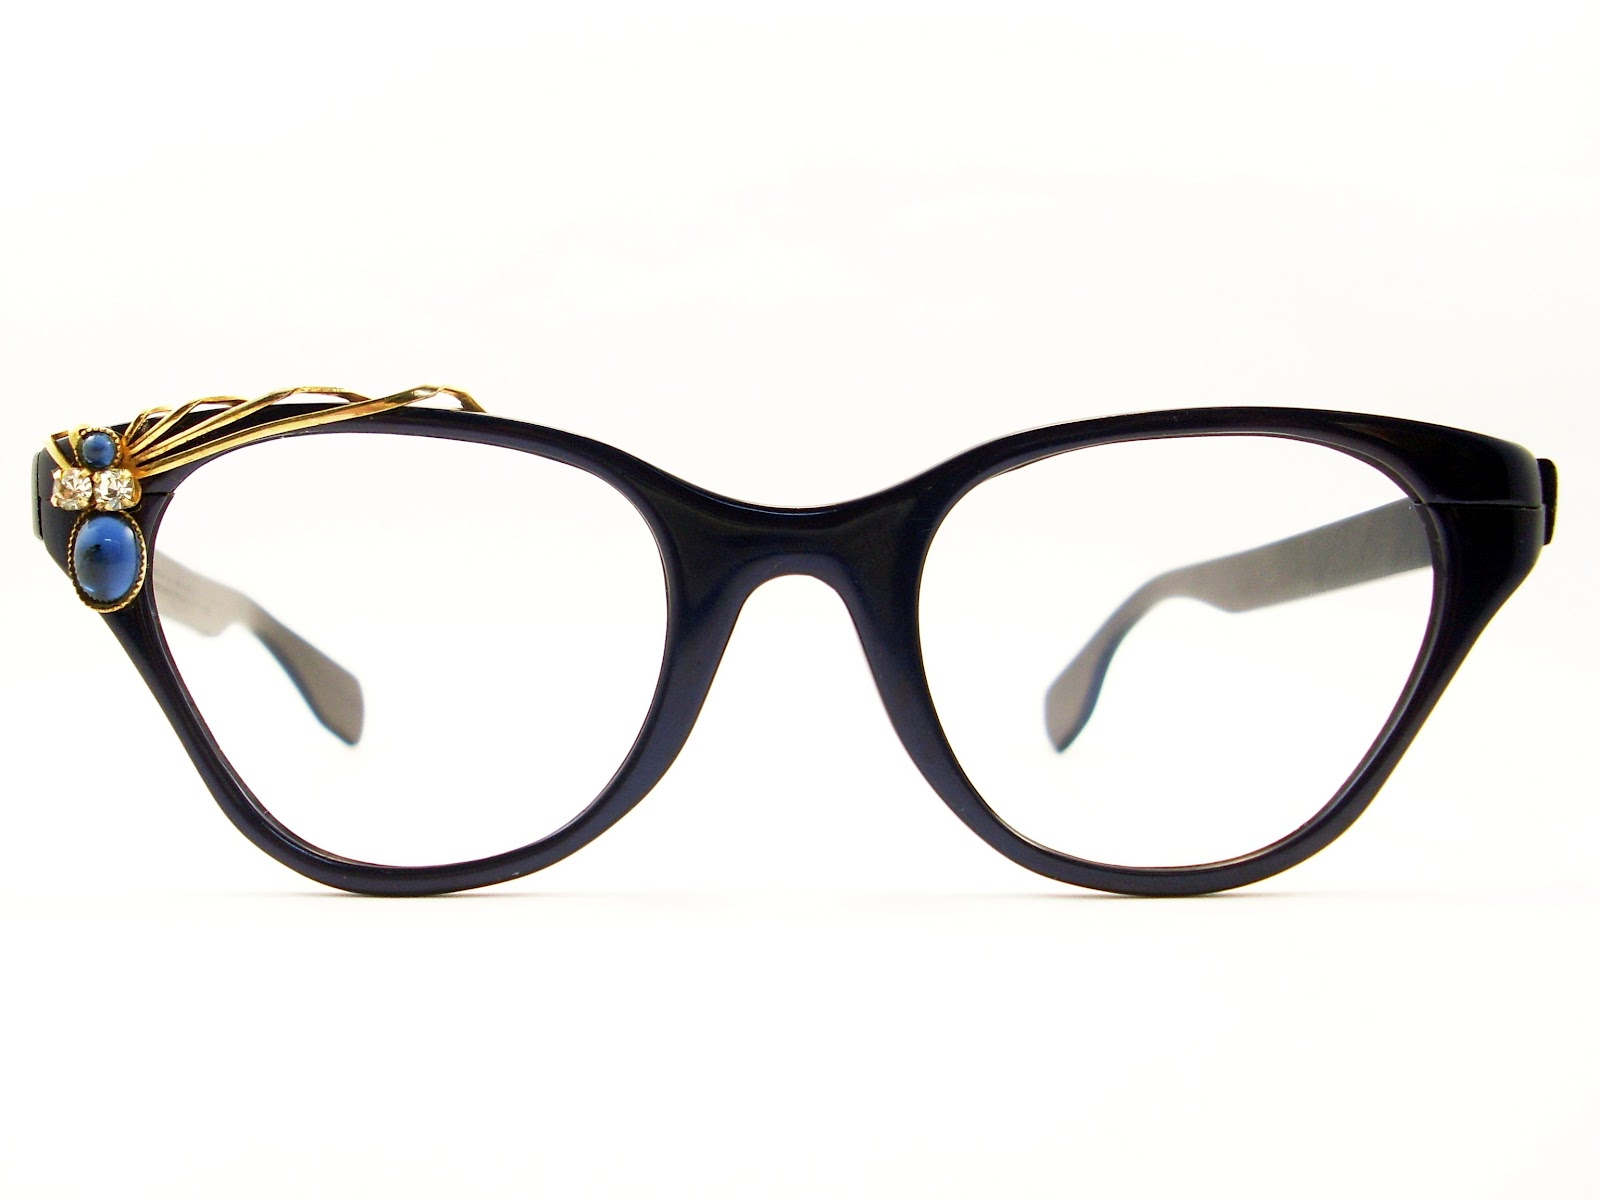 Four Trendy Eyewear Frames to Kick up Your Style - Steal The Style